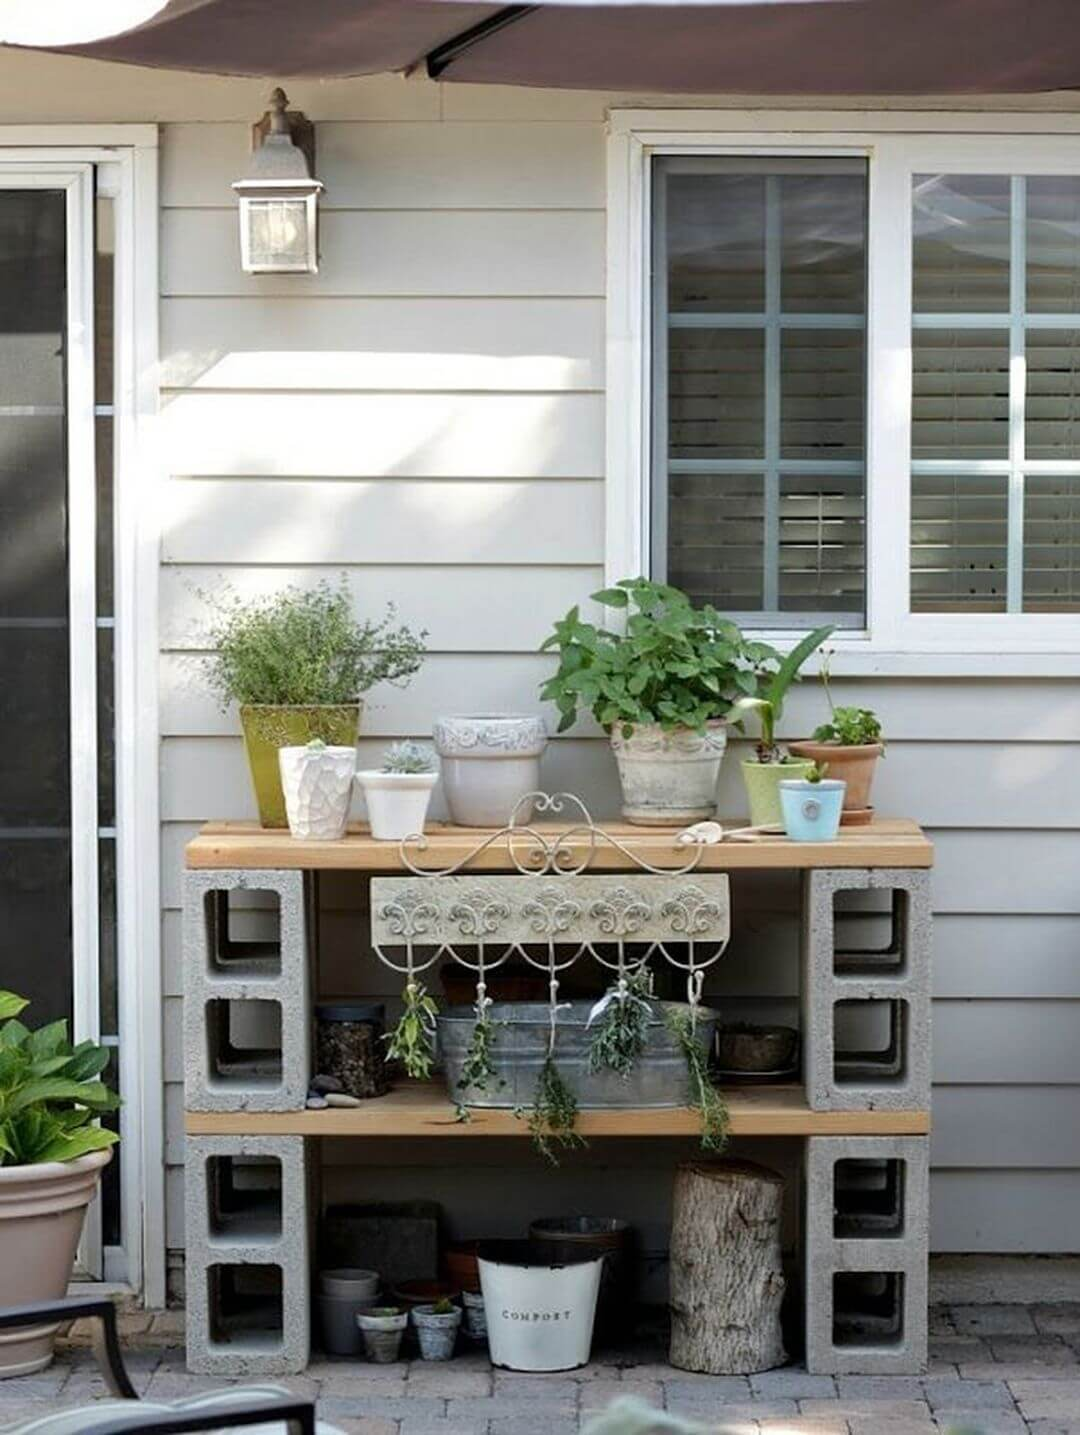 Cinder Block Potting Table That's Simple and Practical